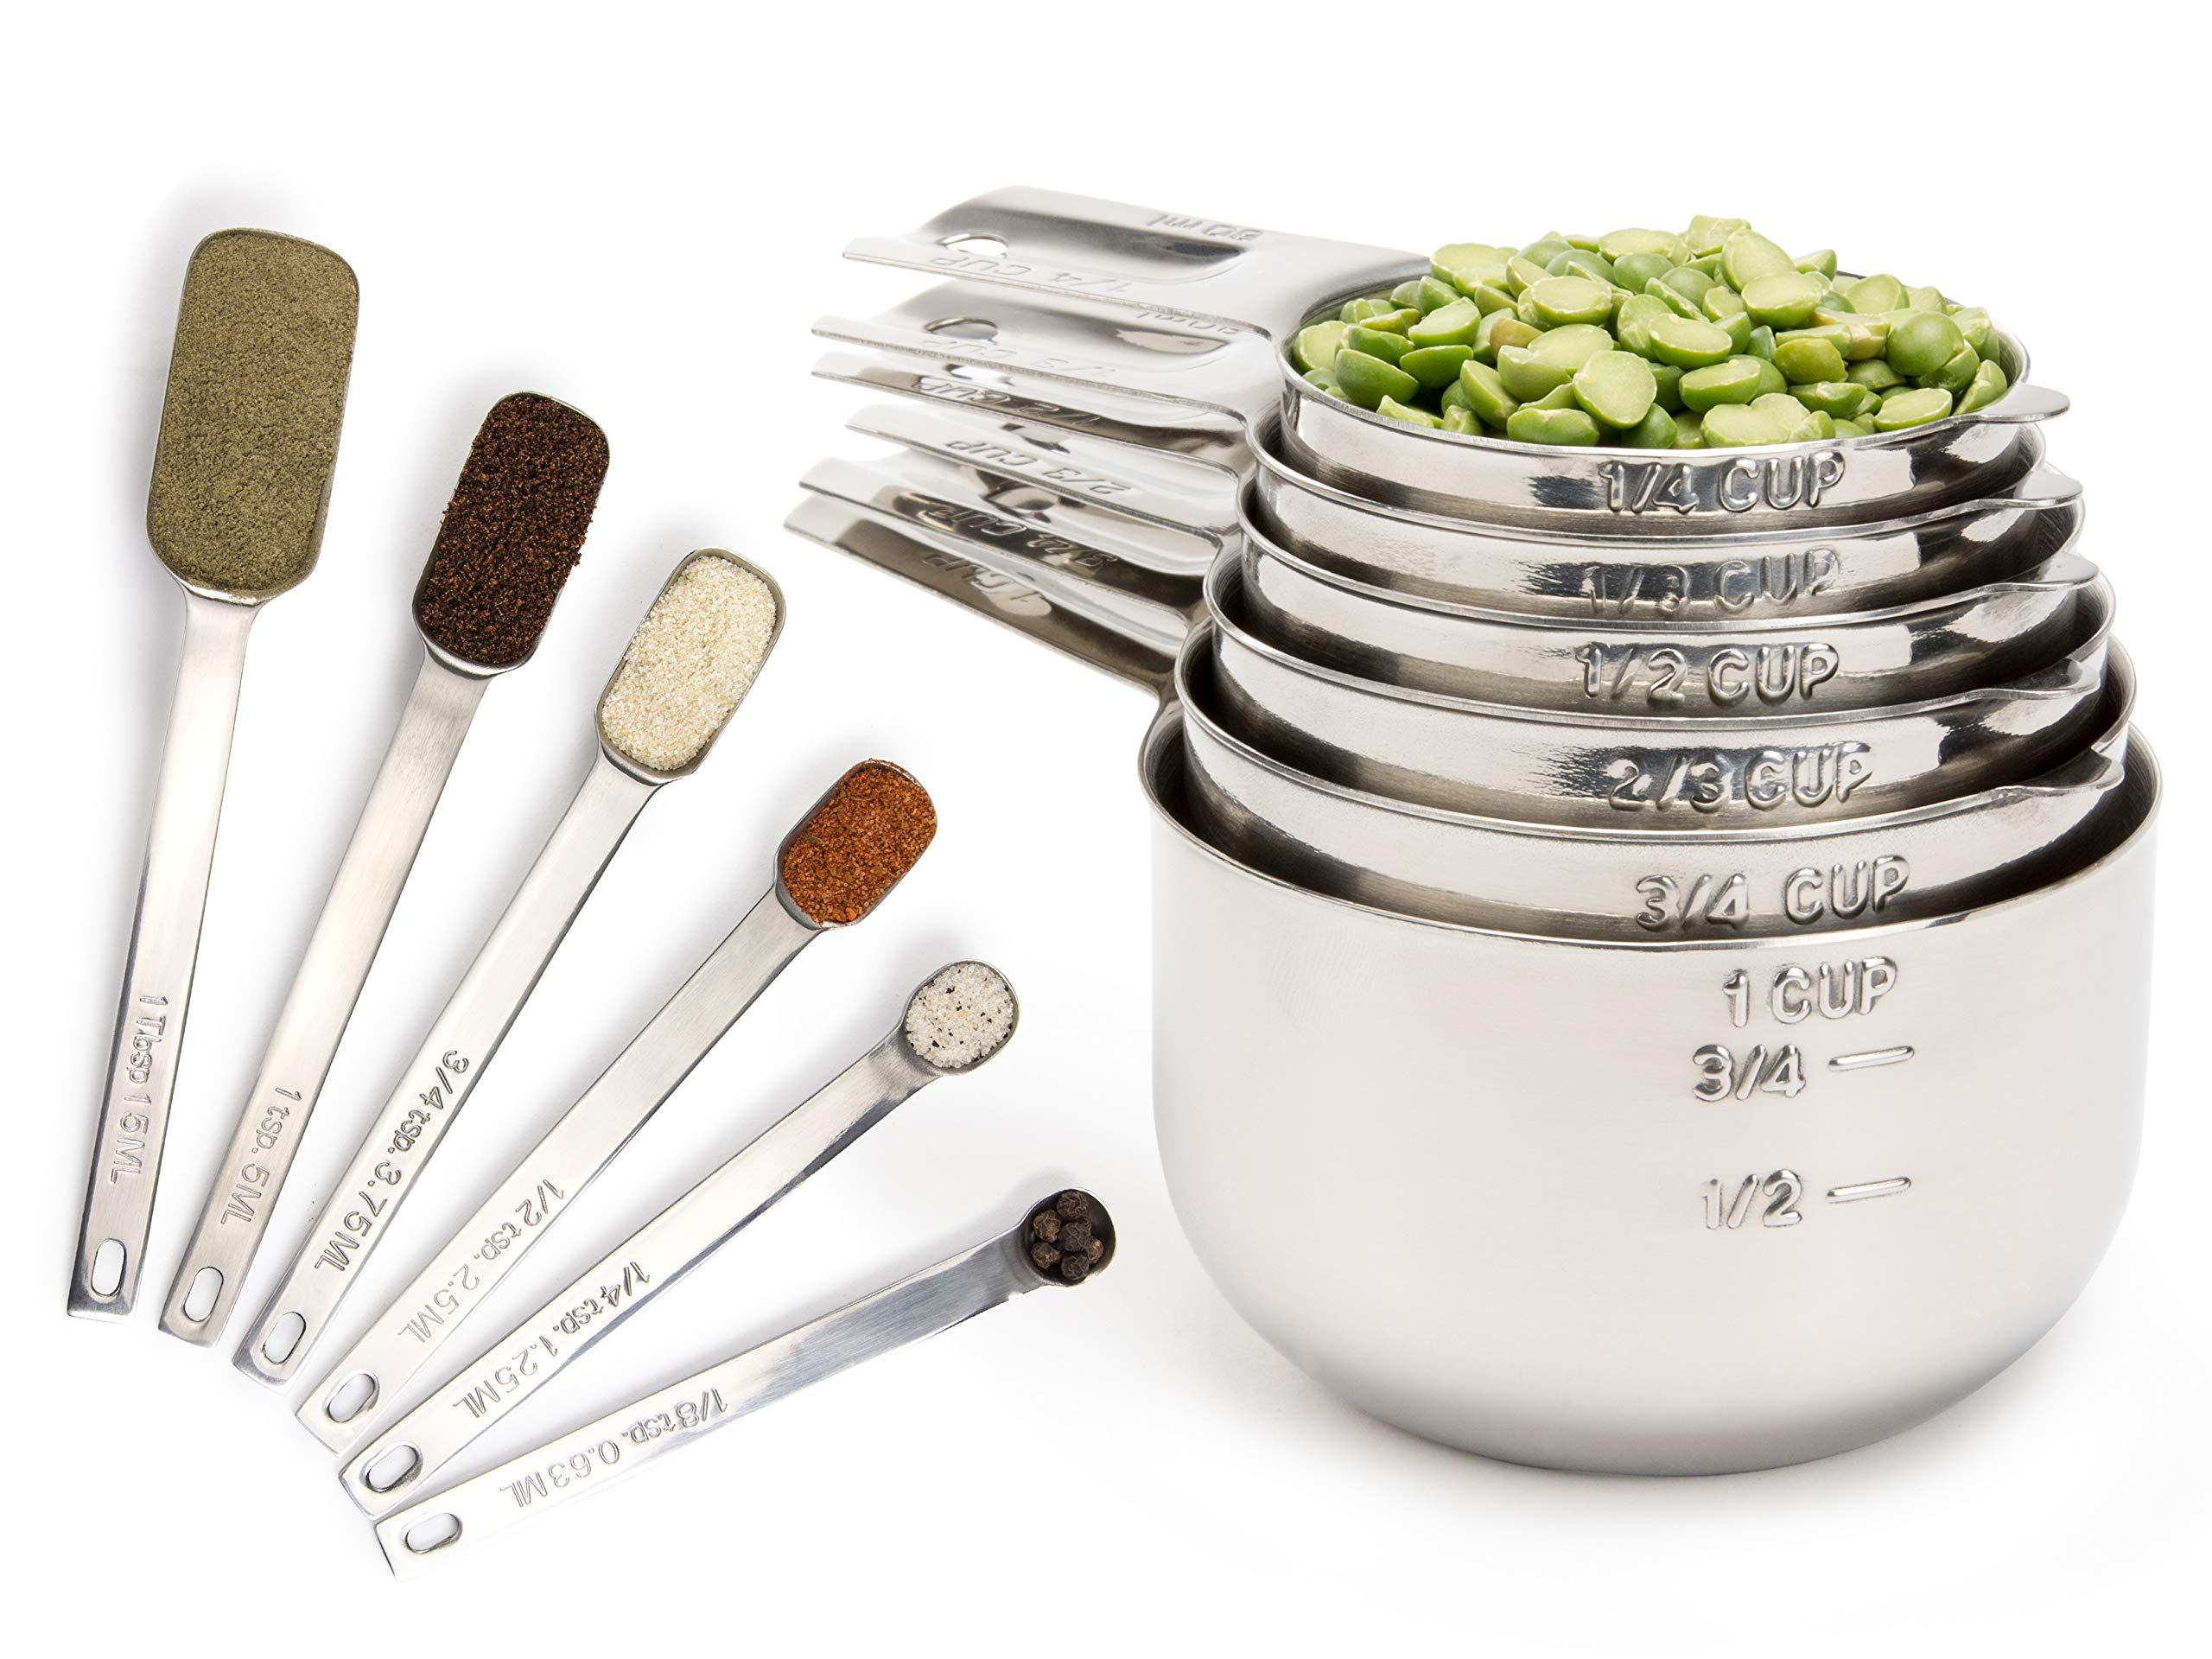 Simply Gourmet Measuring Cups and Measuring Spoons Set Stainless Steel Measuring Cups and Spoons Set of 12. Liquid Measuring Cup or Dry Measuring Cup Set. Stainless Measuring Cups, Nesting Cups by Simply Gourmet